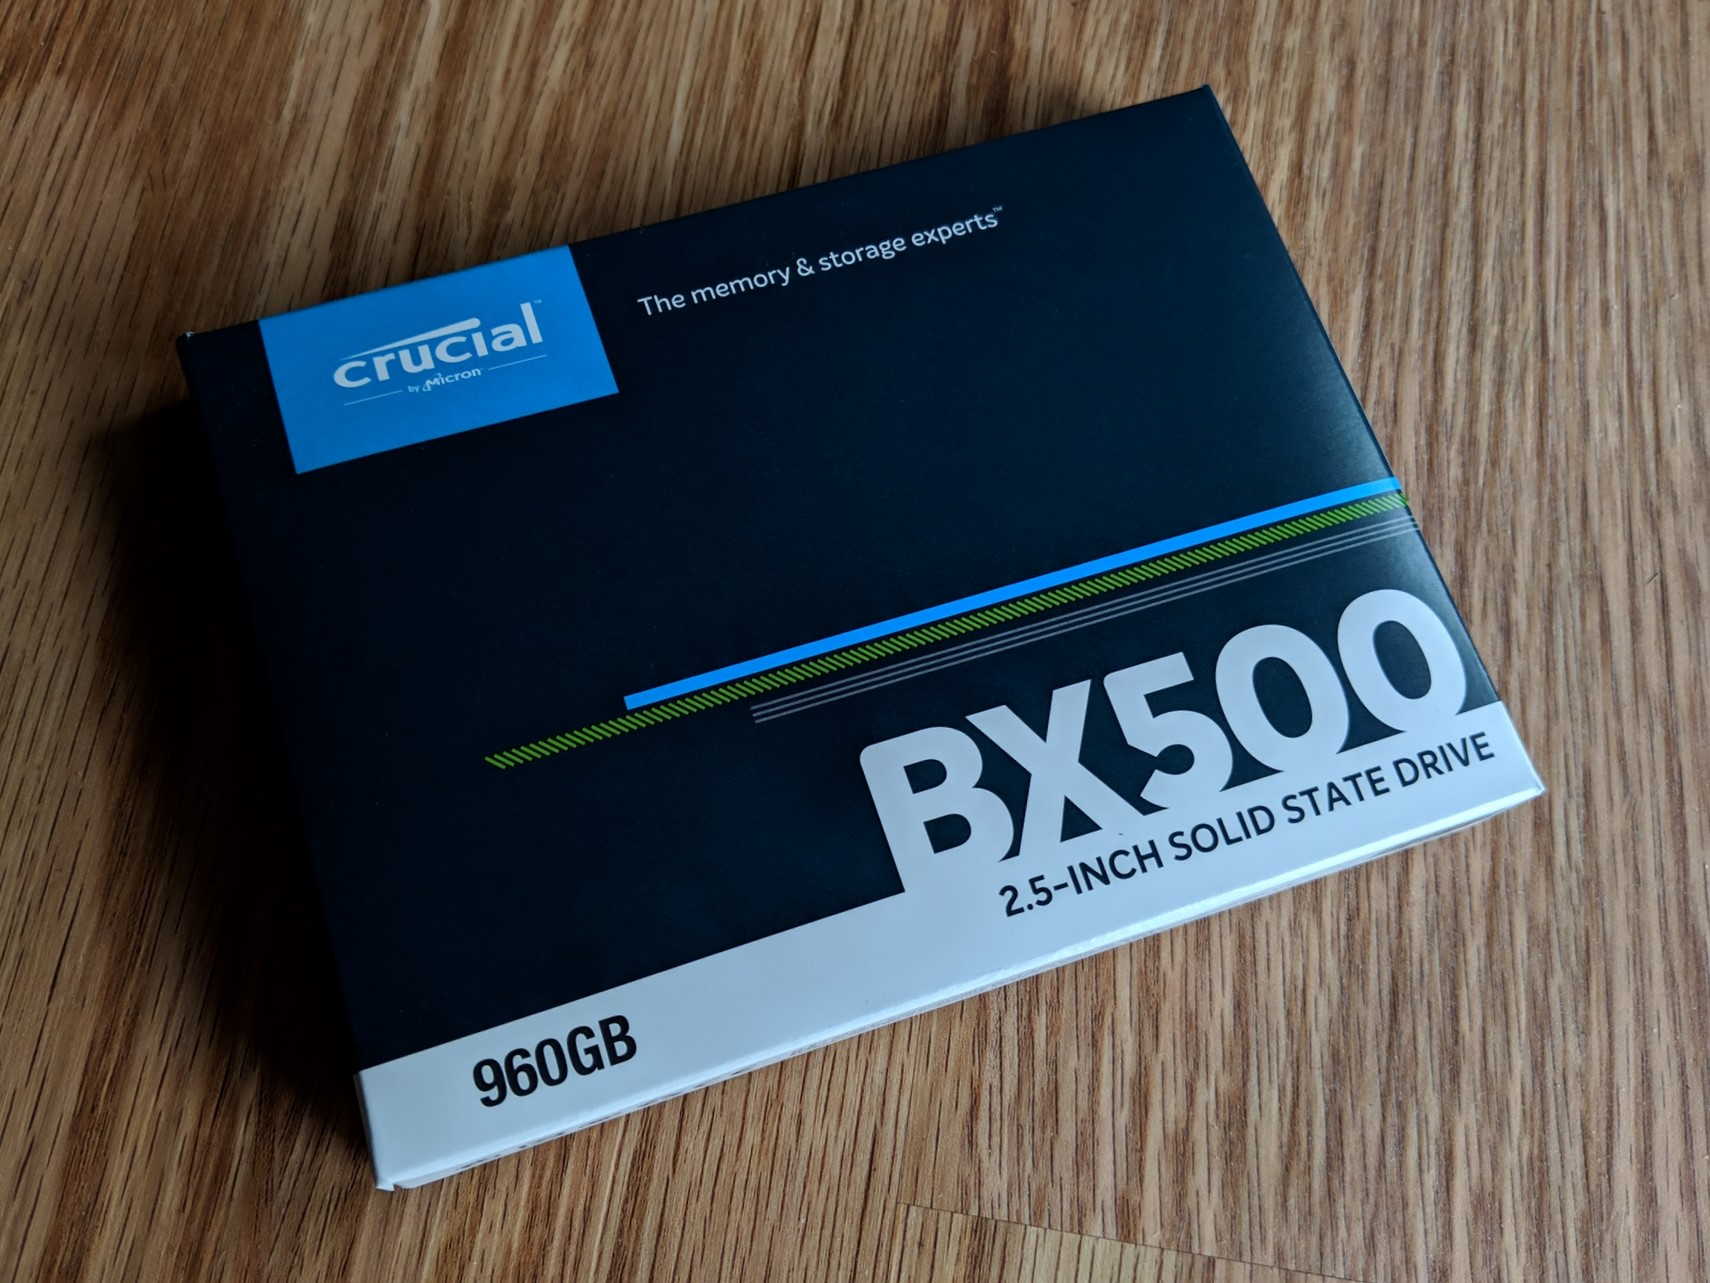 Micron Crucial BX500 SSD Review: Get It Today! - Dong Knows Tech